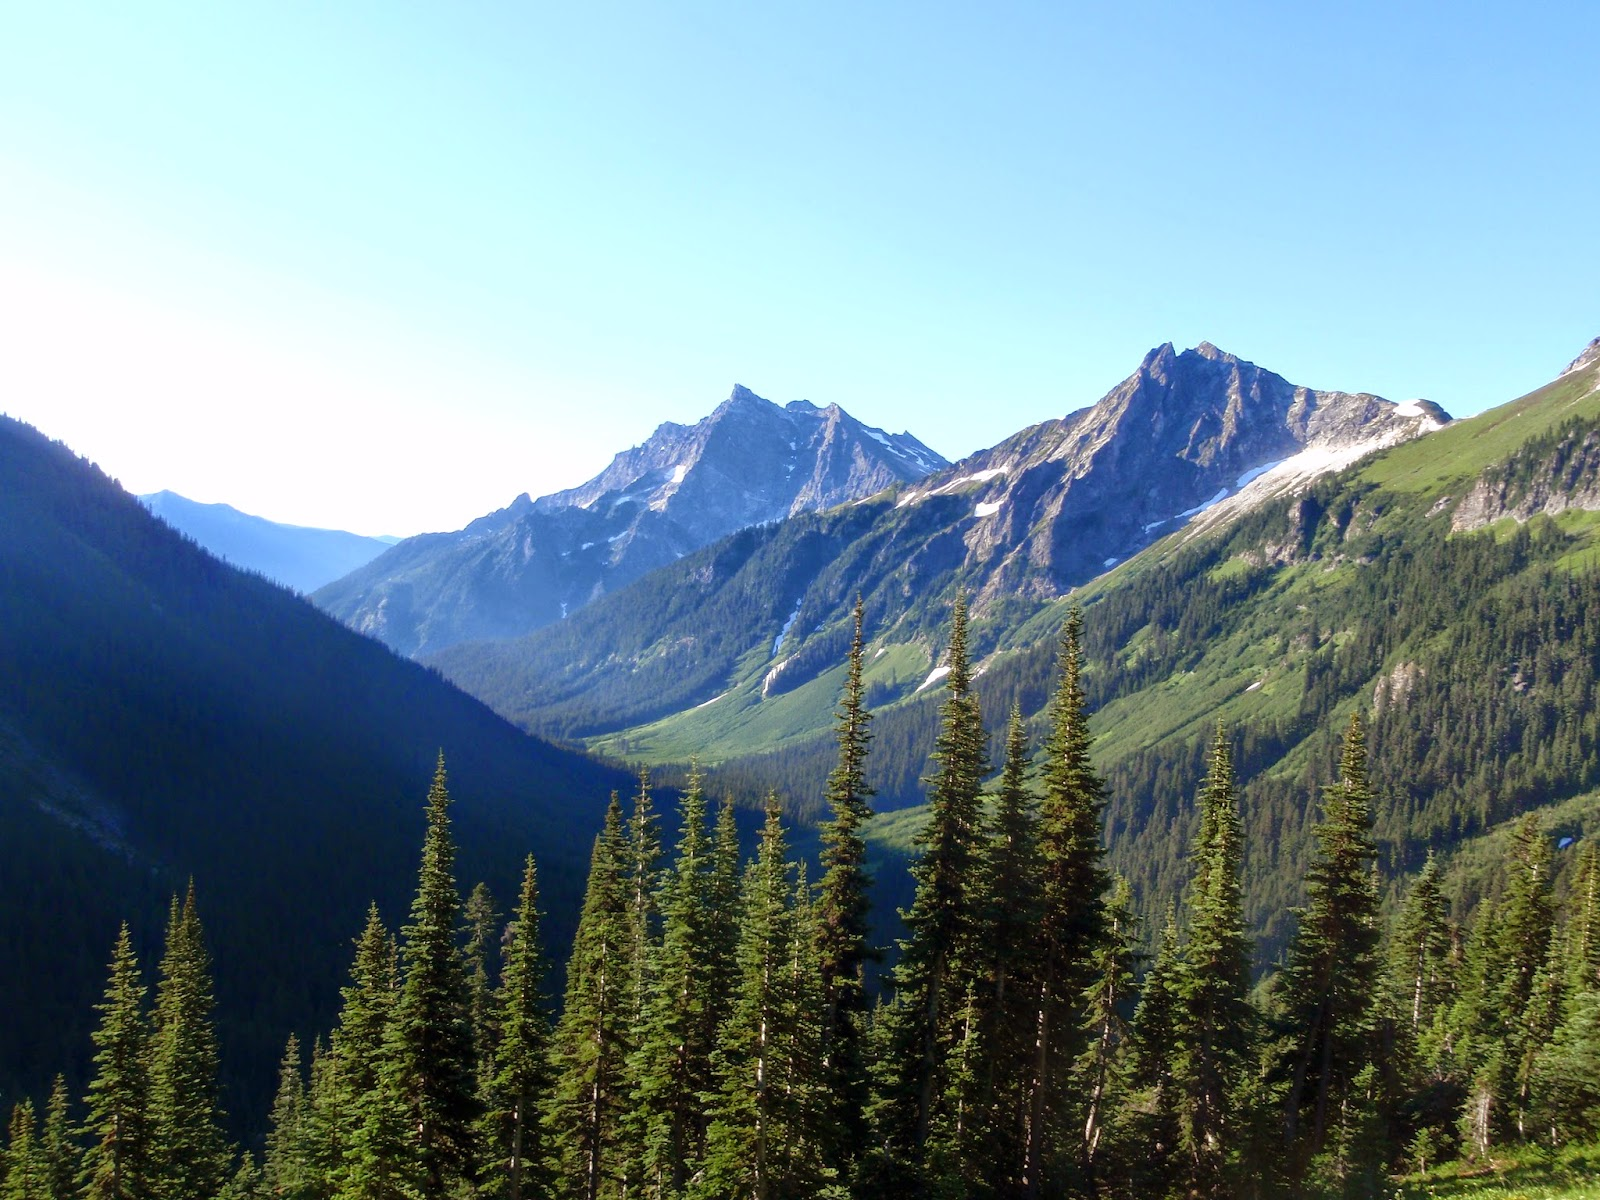 Glacier Peak Wilderness - Buck Creek trail and route out